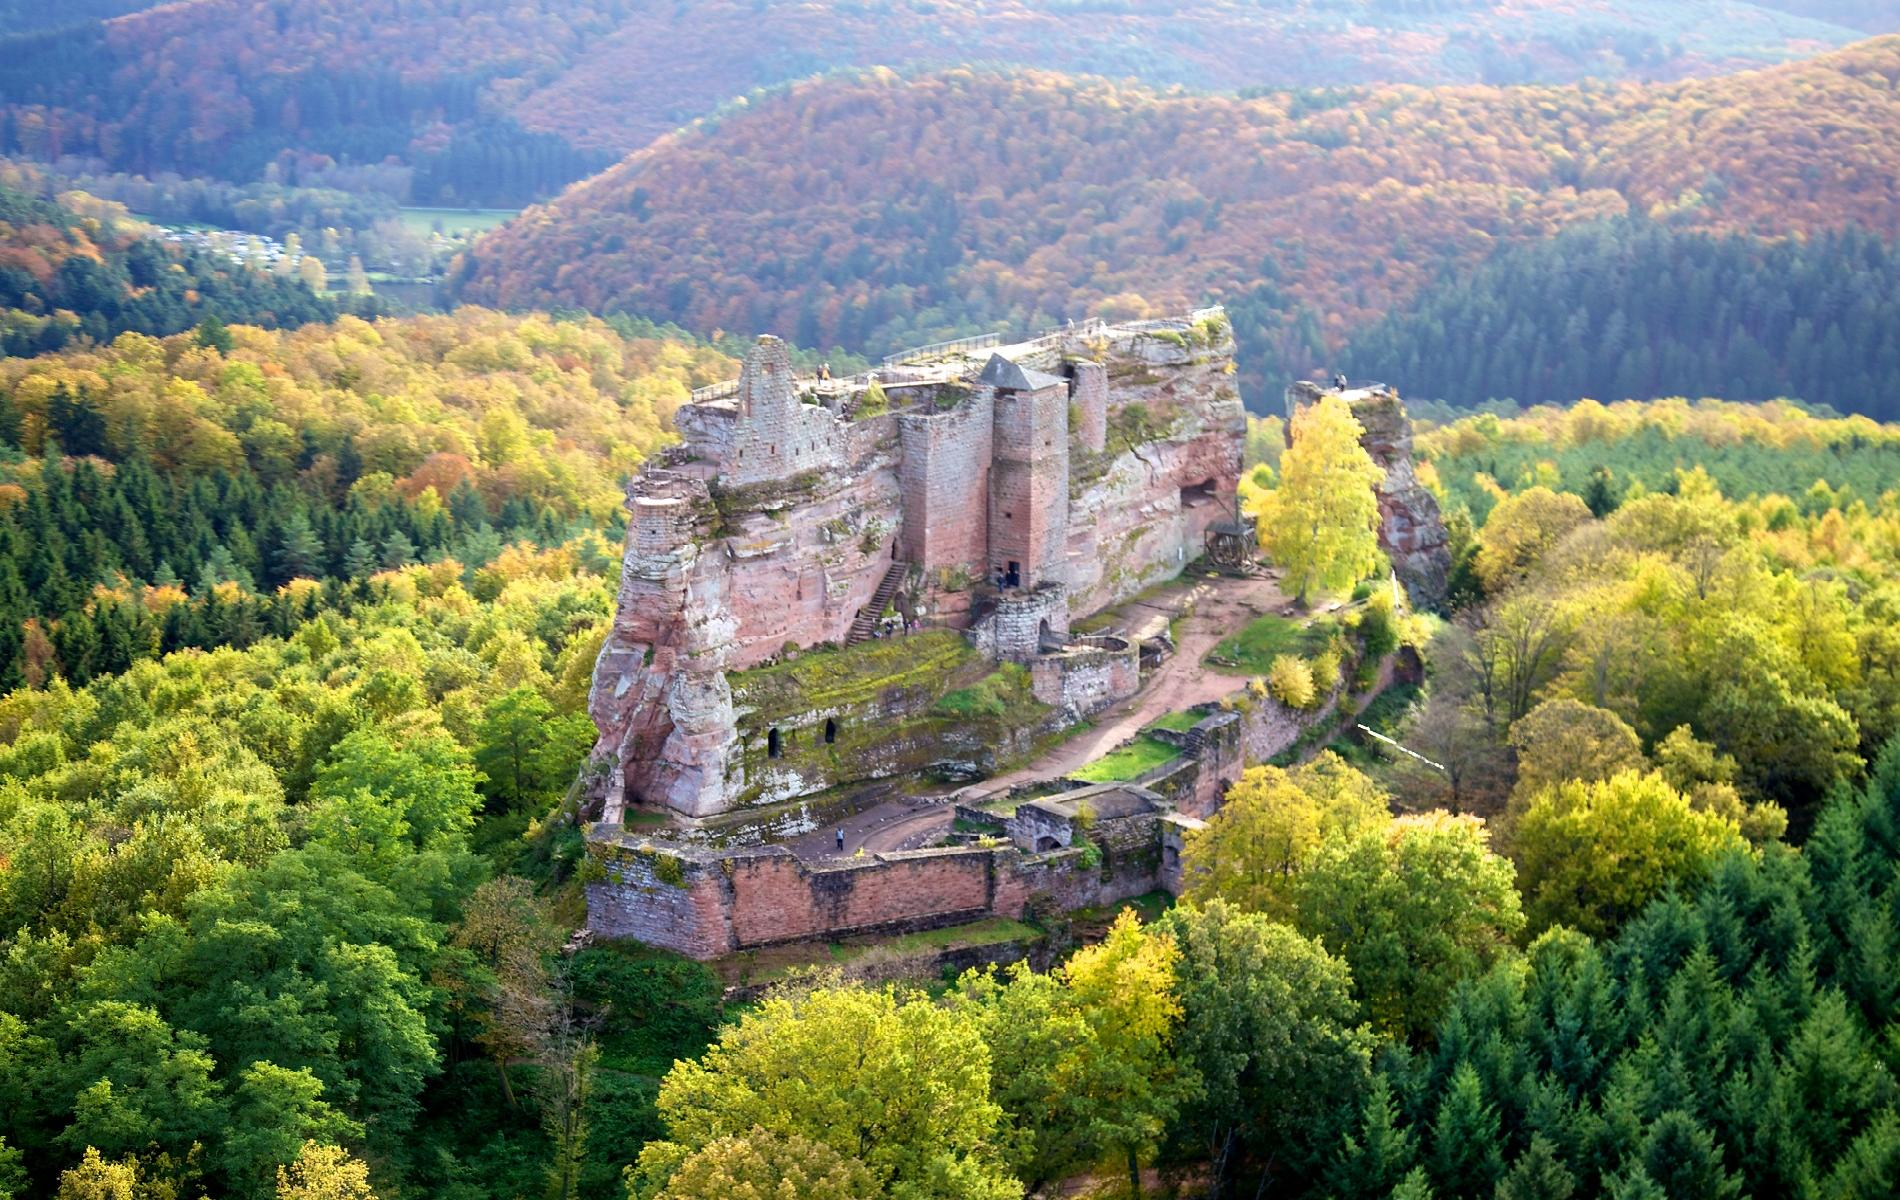 Castle of Fleckenstein